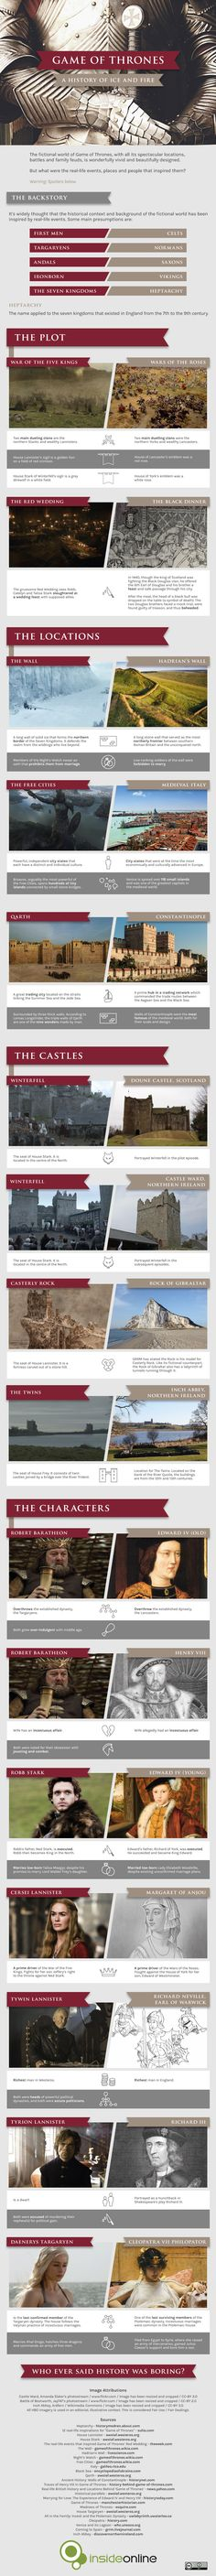 game of thrones history and lore online